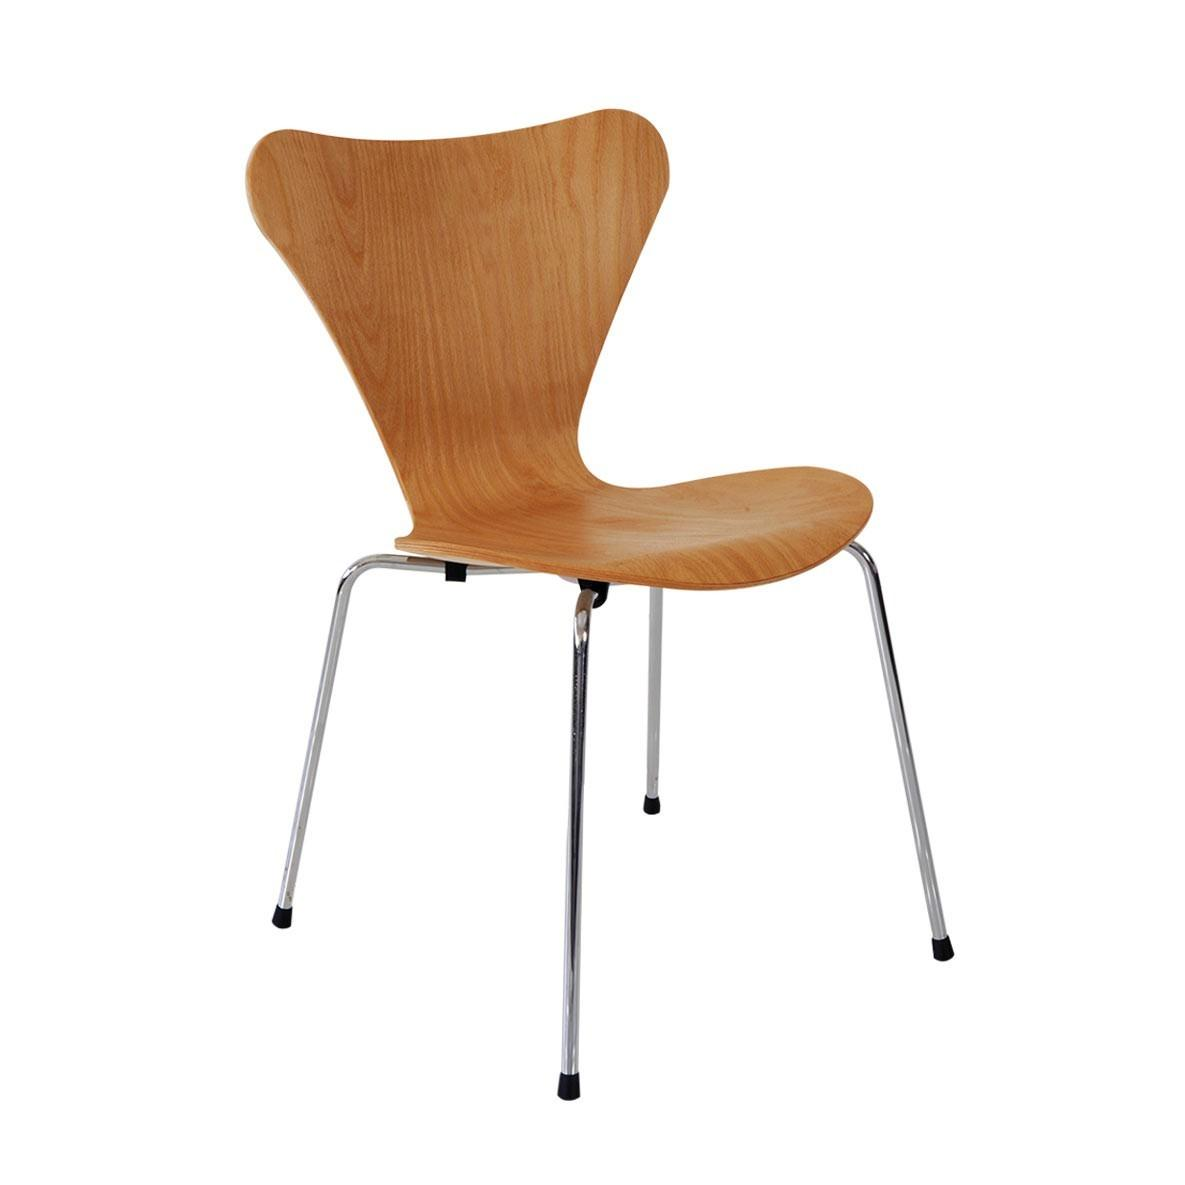 Chair Arne Jacobsen Series Ck45